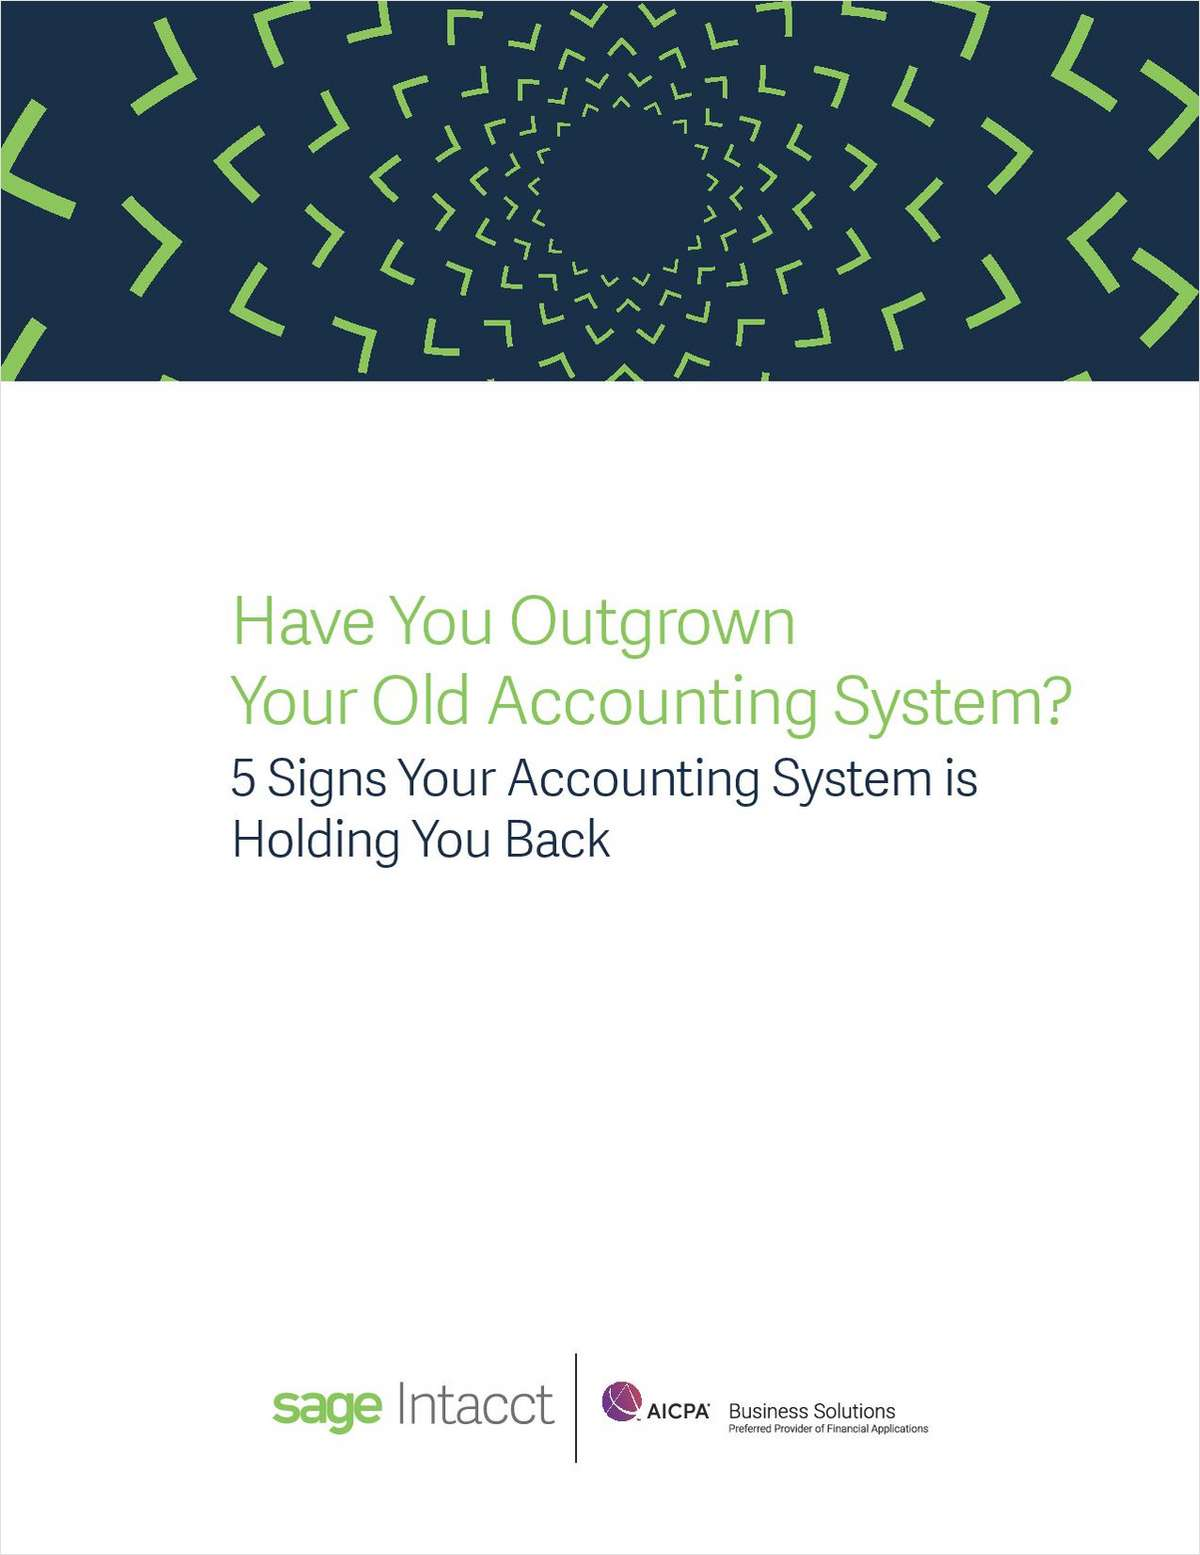 Have You Outgrown Your Old Accounting System?